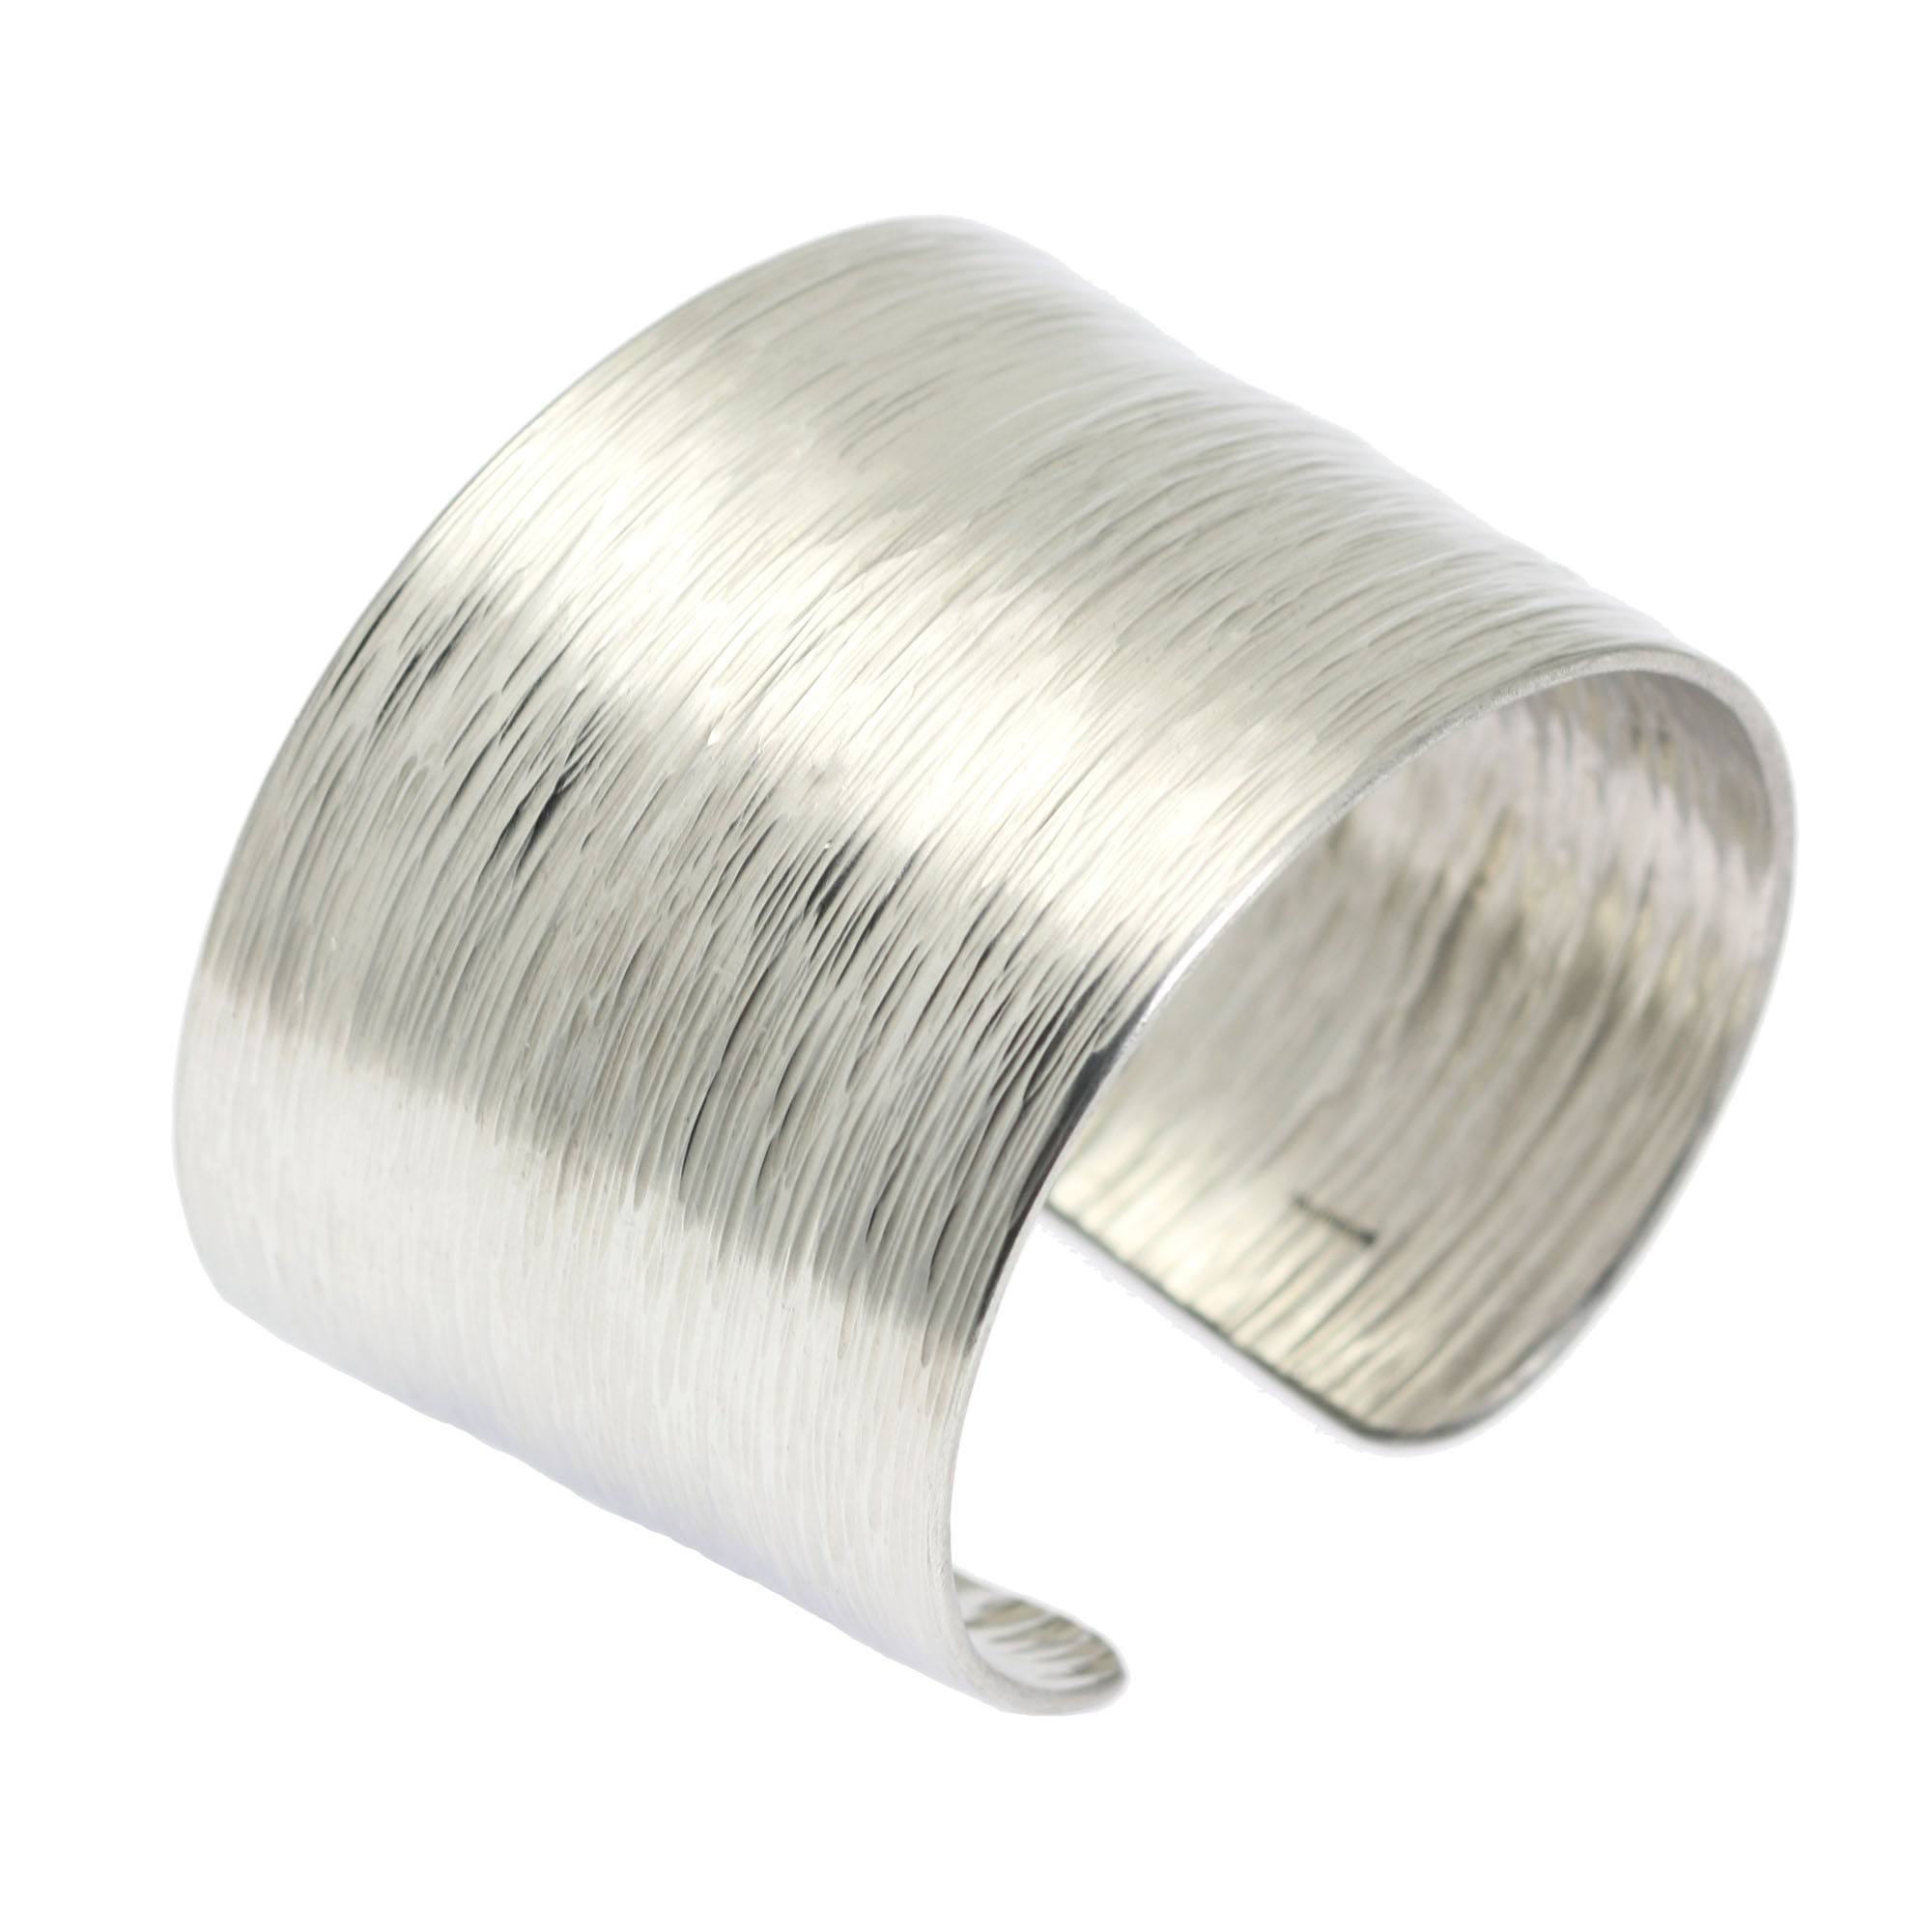 p torque handmade stunningly silver sterling bangles asp cuff wide bangle solid simple